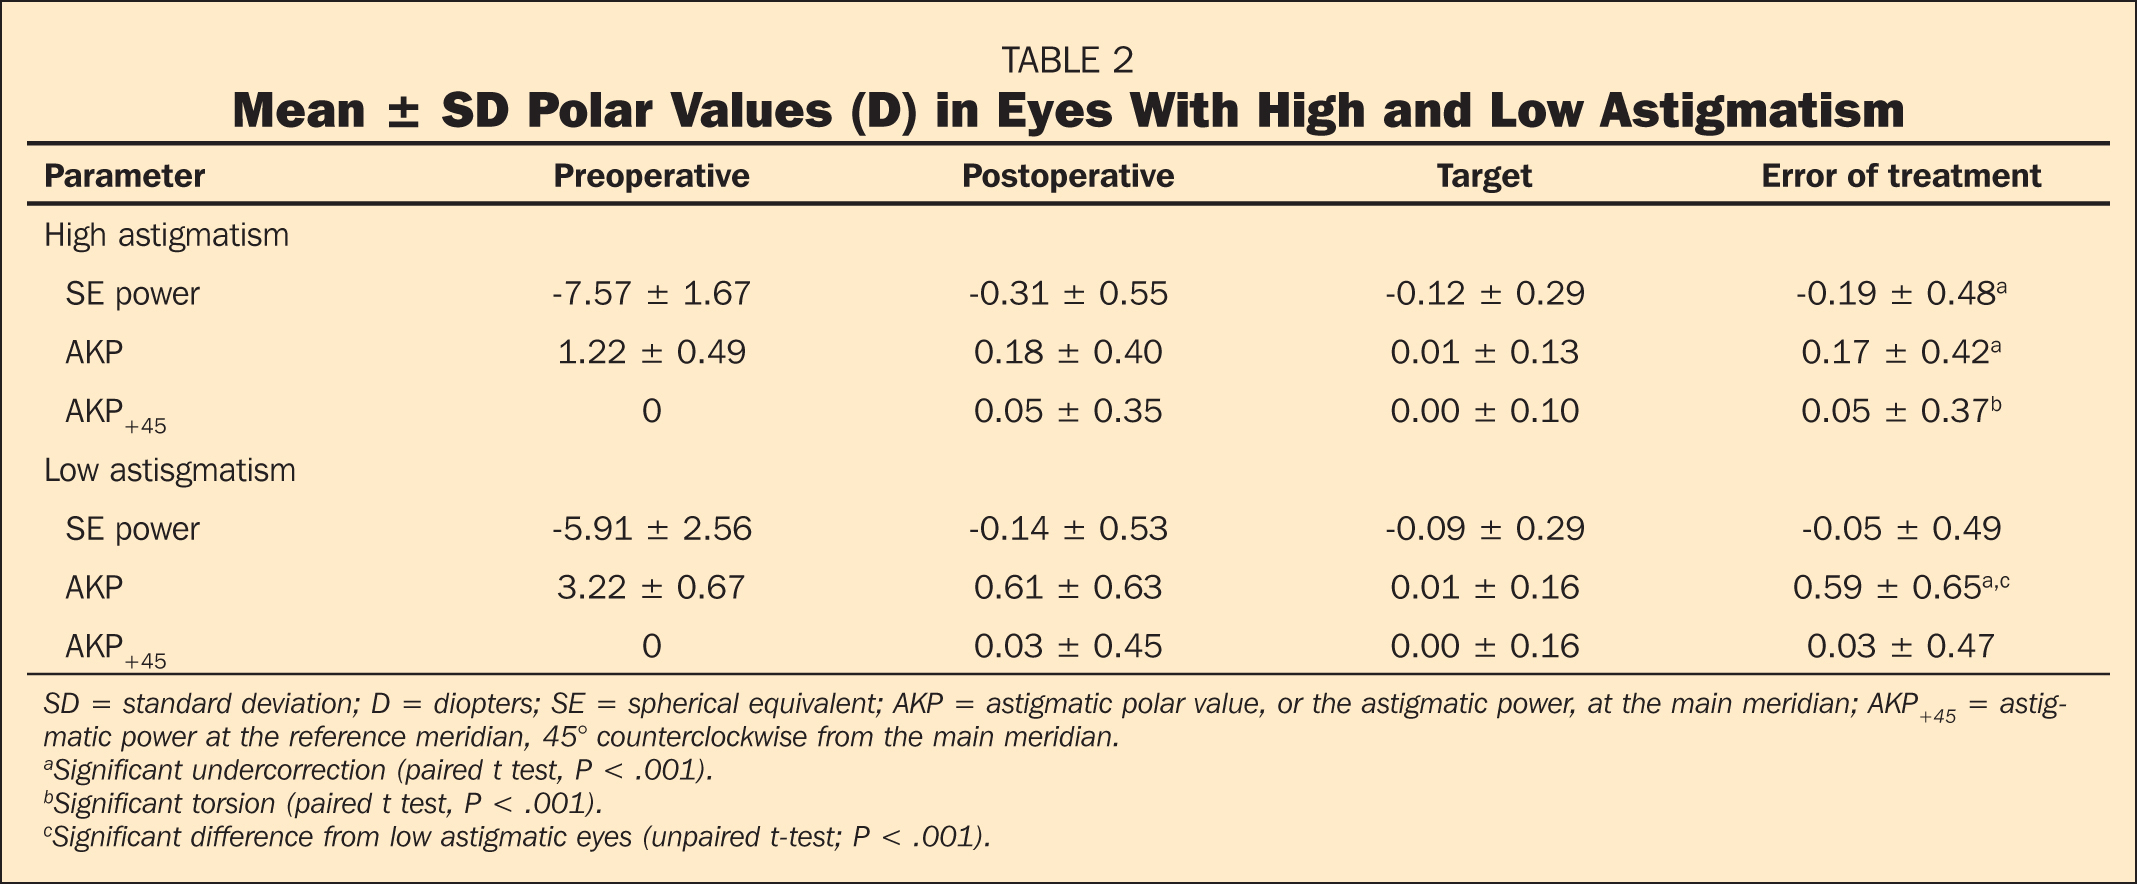 Mean ± SD Polar Values (D) in Eyes With High and Low Astigmatism